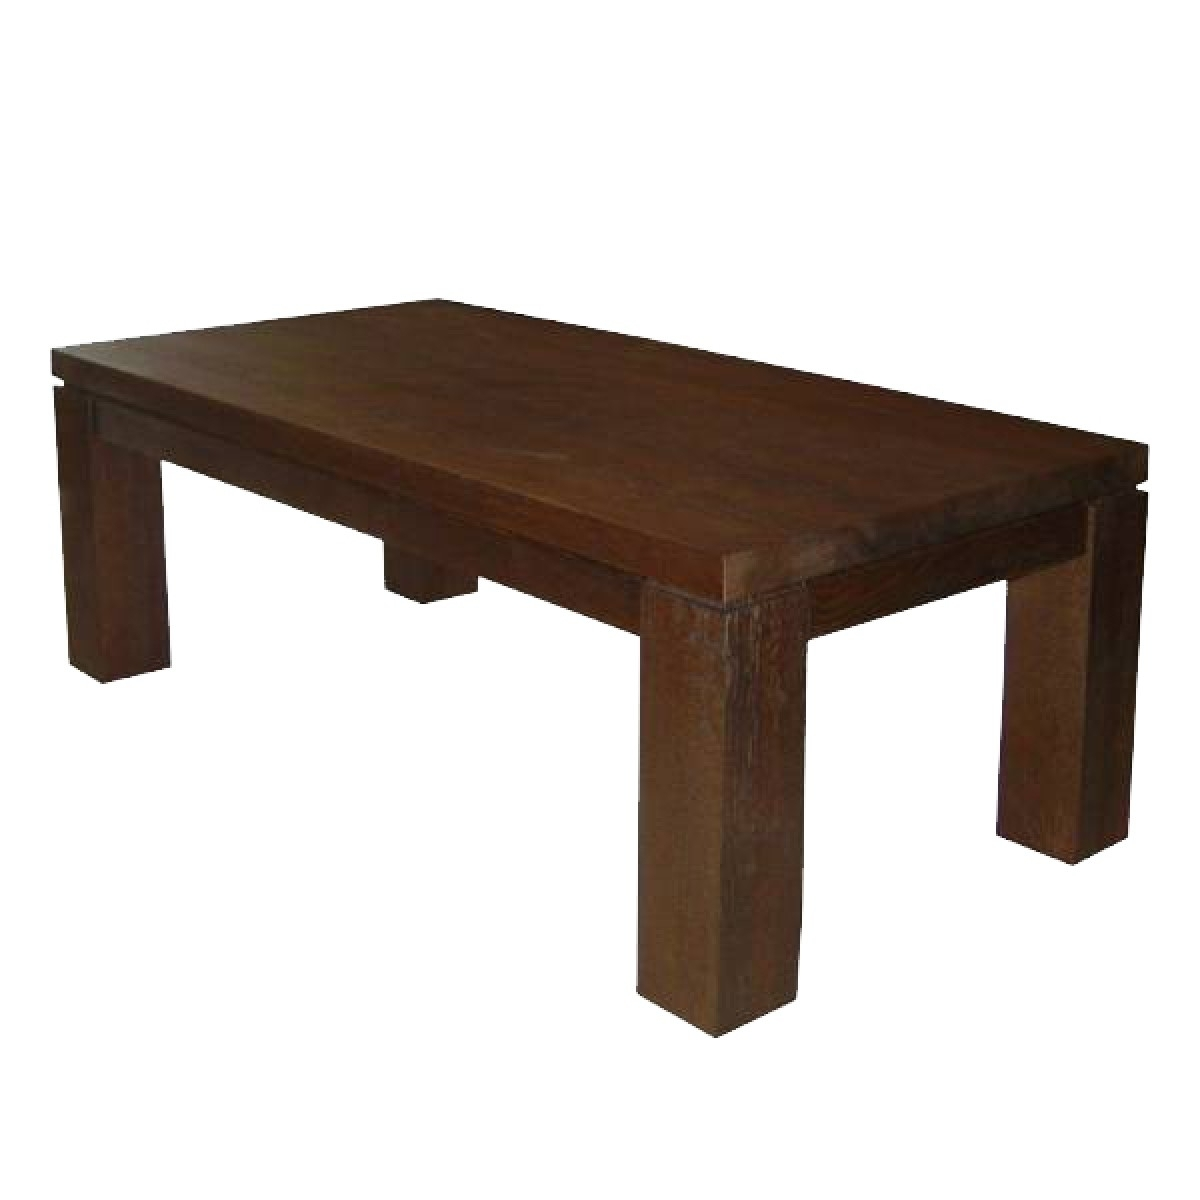 Most Recently Released Adam Coffee Tables Inside Adam Coffee Table – Coffee Tables – Shopproduct – Furniture (View 13 of 20)